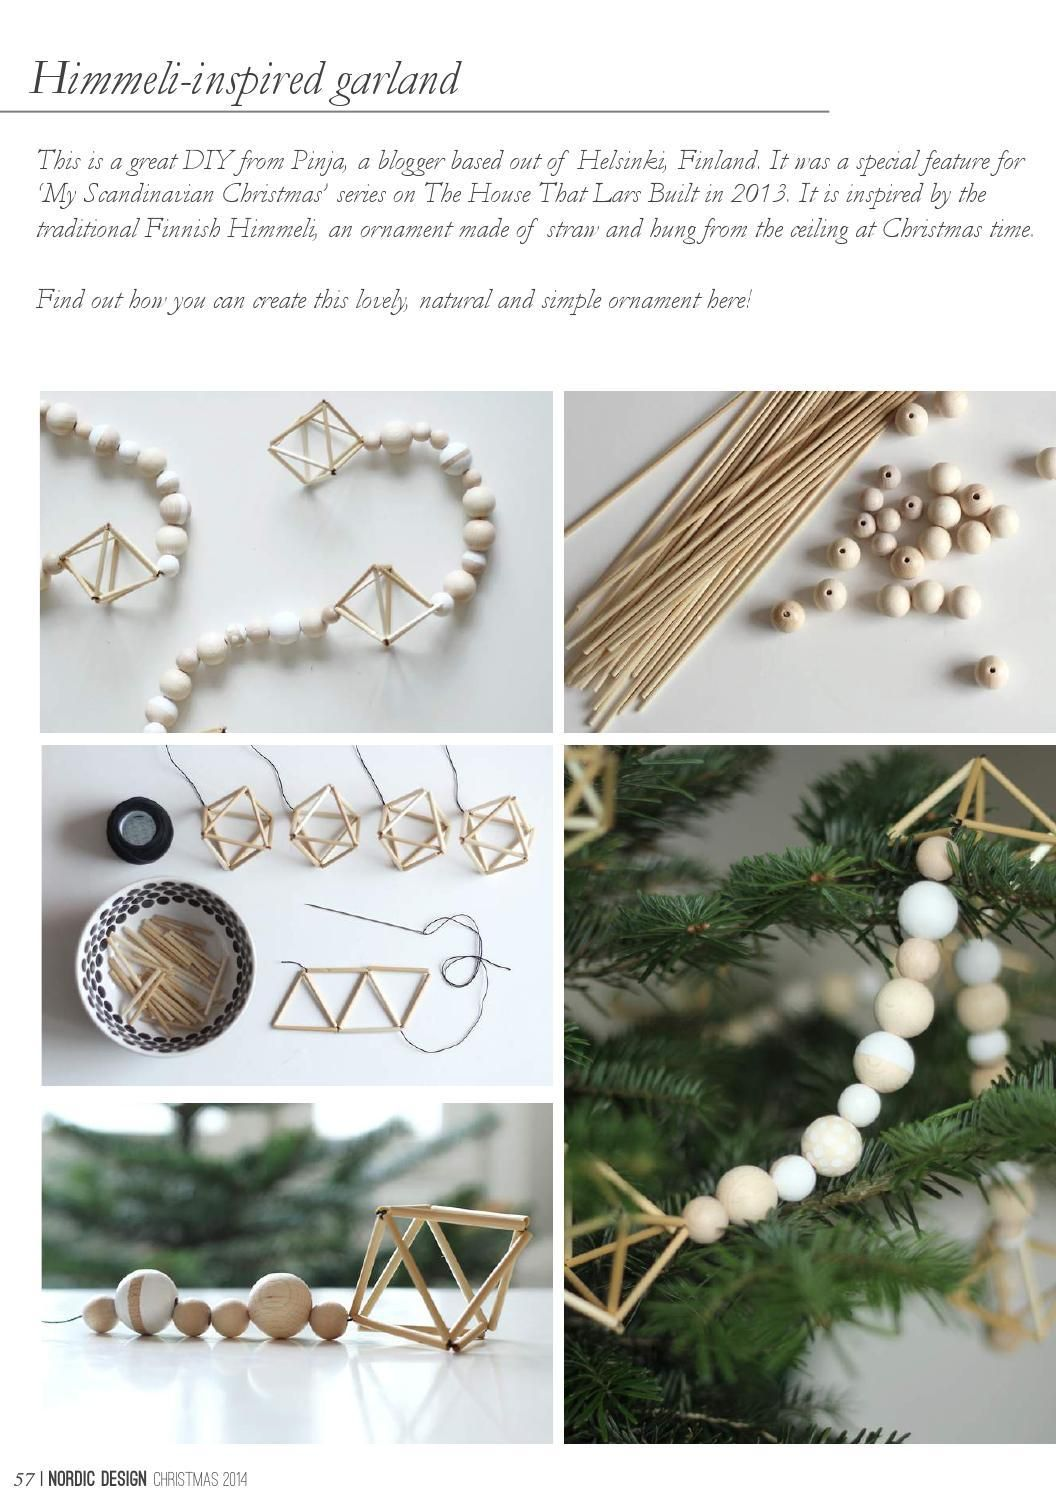 Craft himmeli inspired garland Design Pinterest